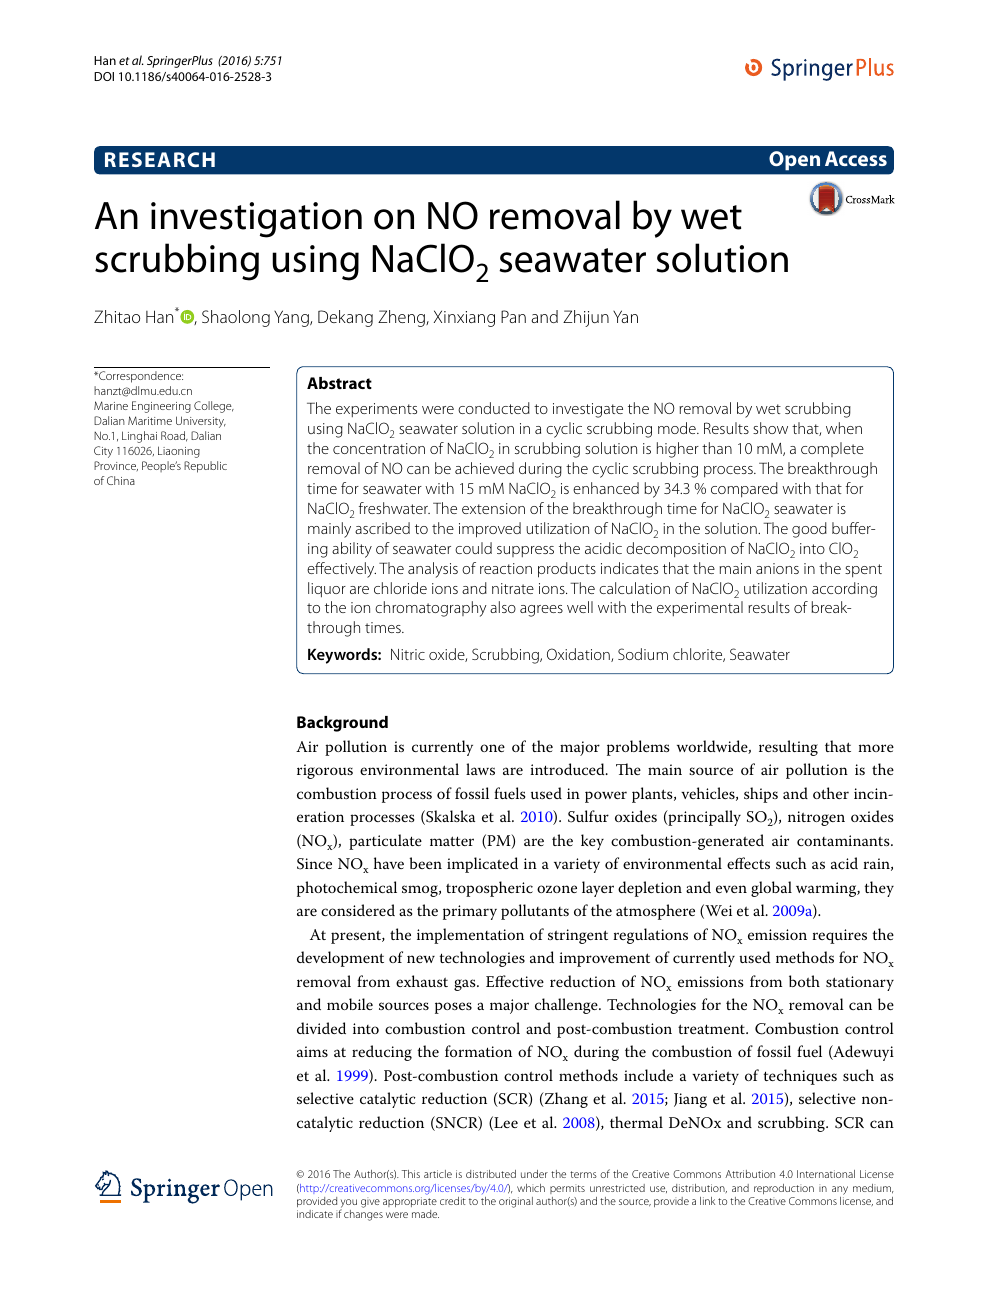 An investigation on NO removal by wet scrubbing using NaClO2